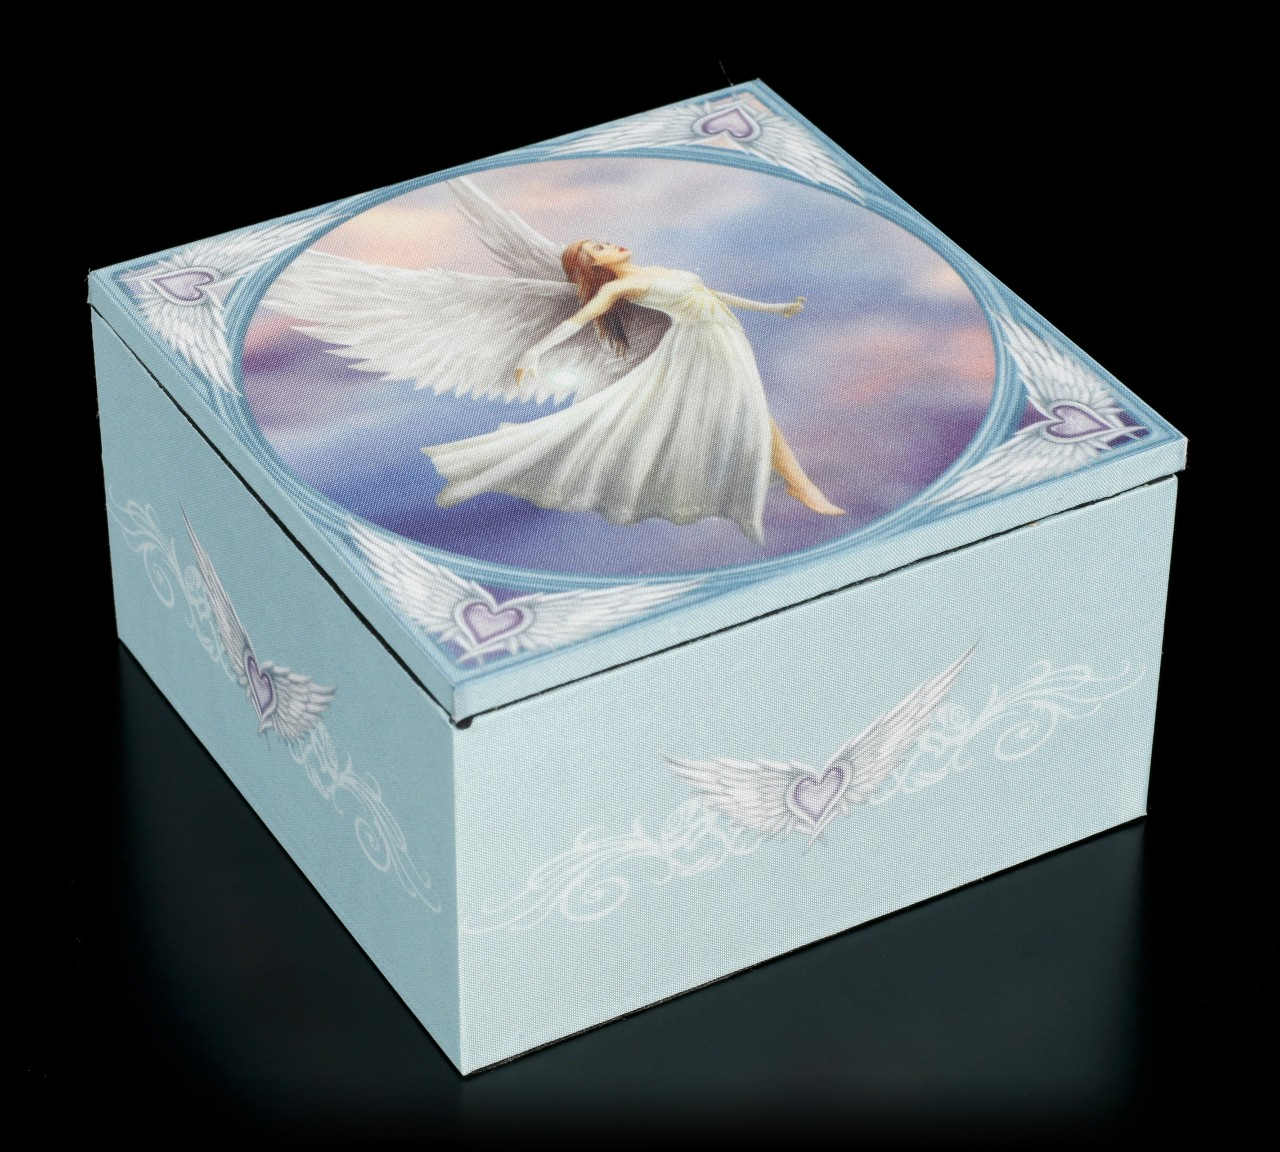 Mirror Box with Angel - Ascendance